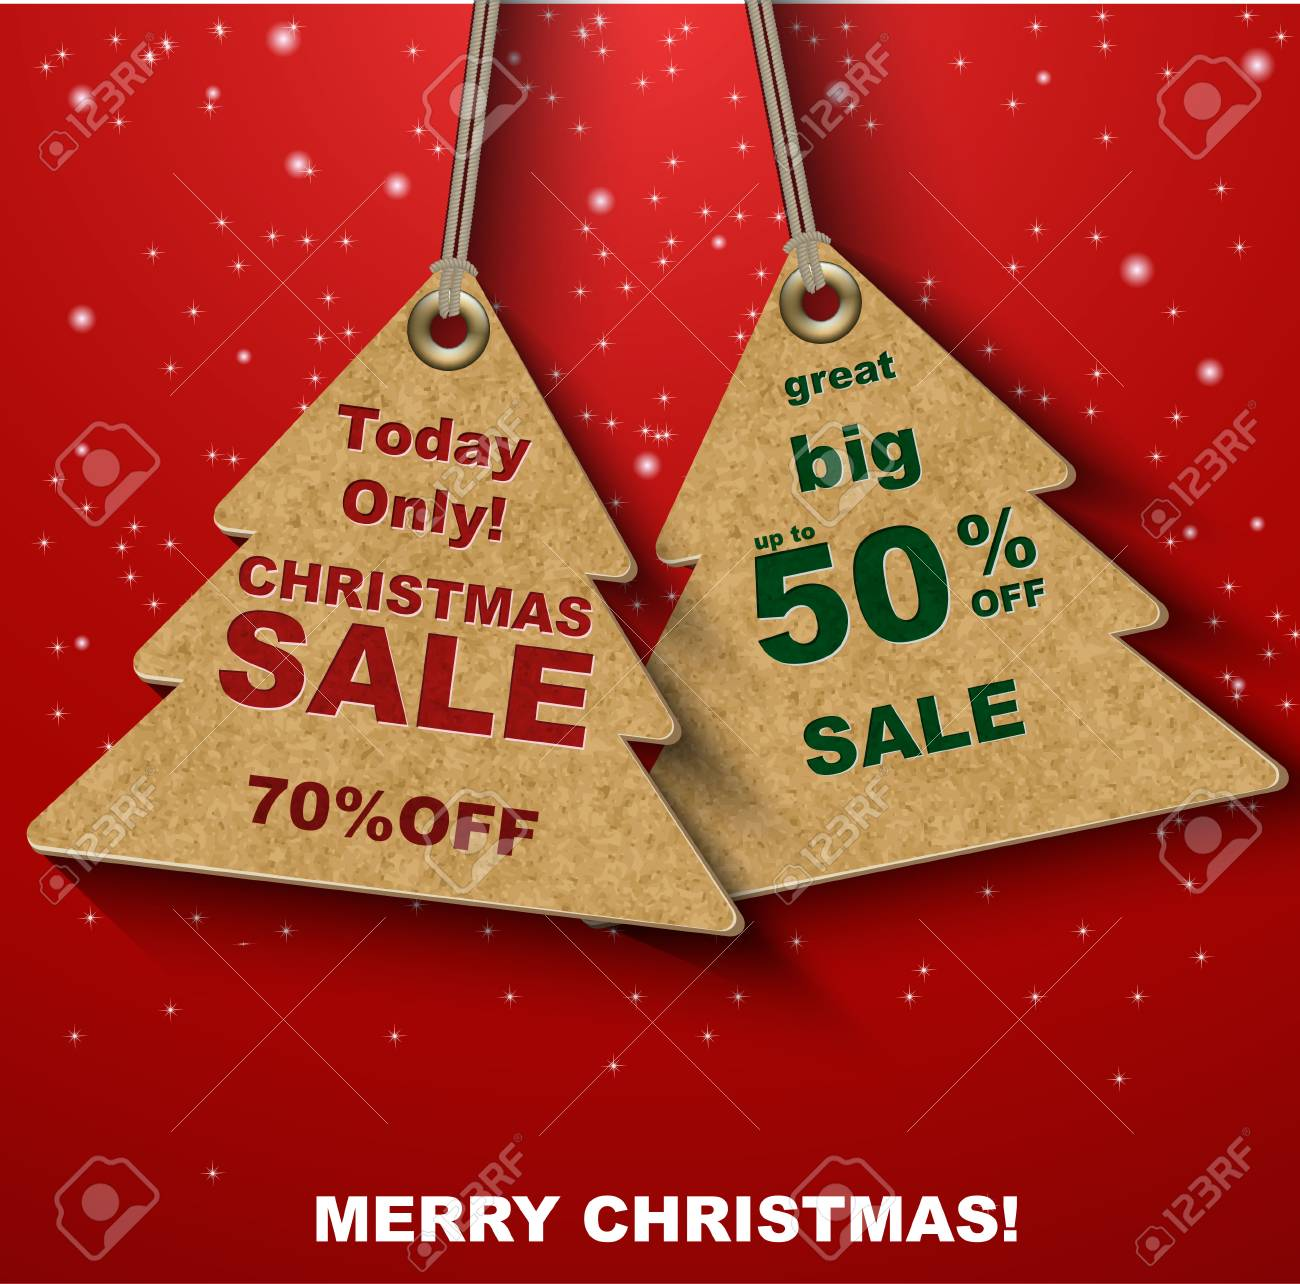 Discount Cdiscount Coupons In The Form Of Christmas Tree Oupons